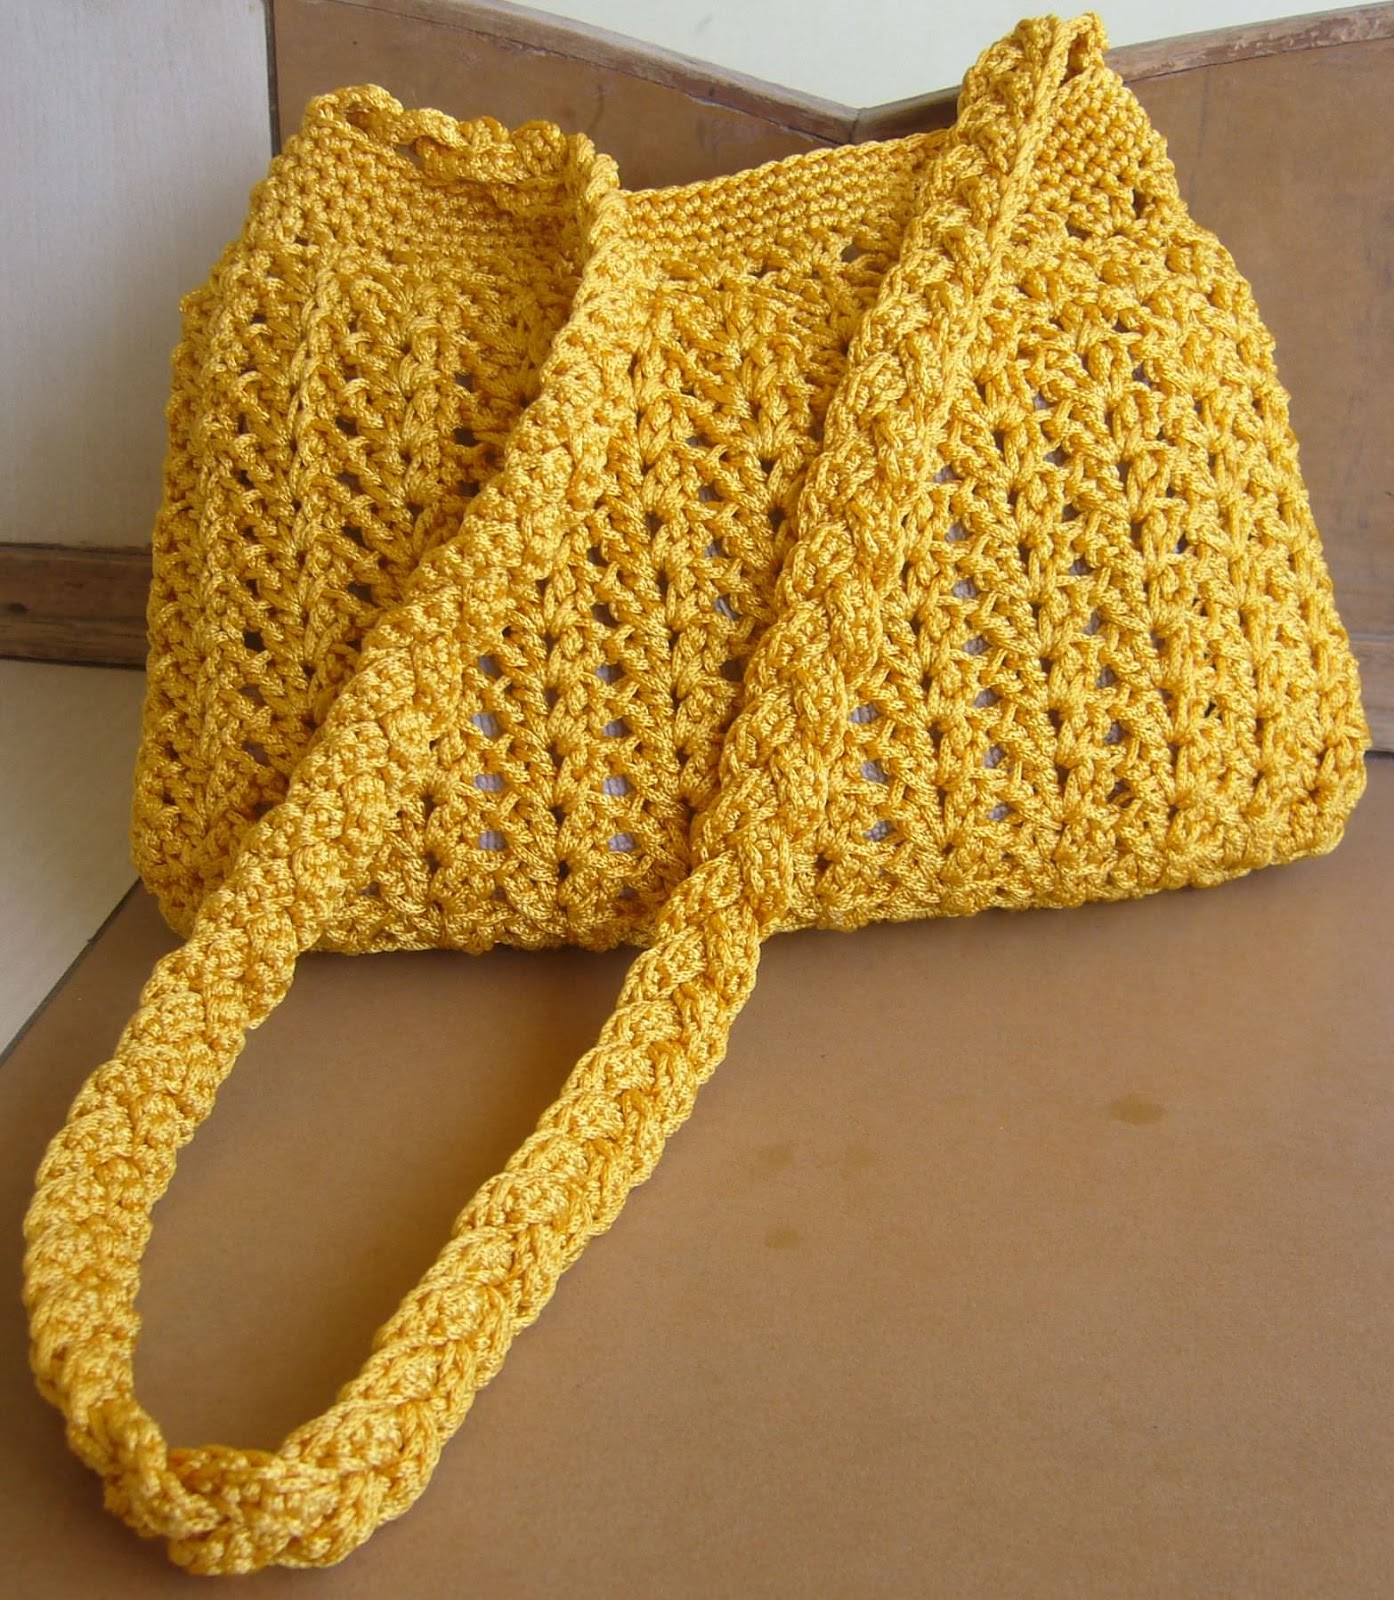 Golden yellow crochet hobo purse